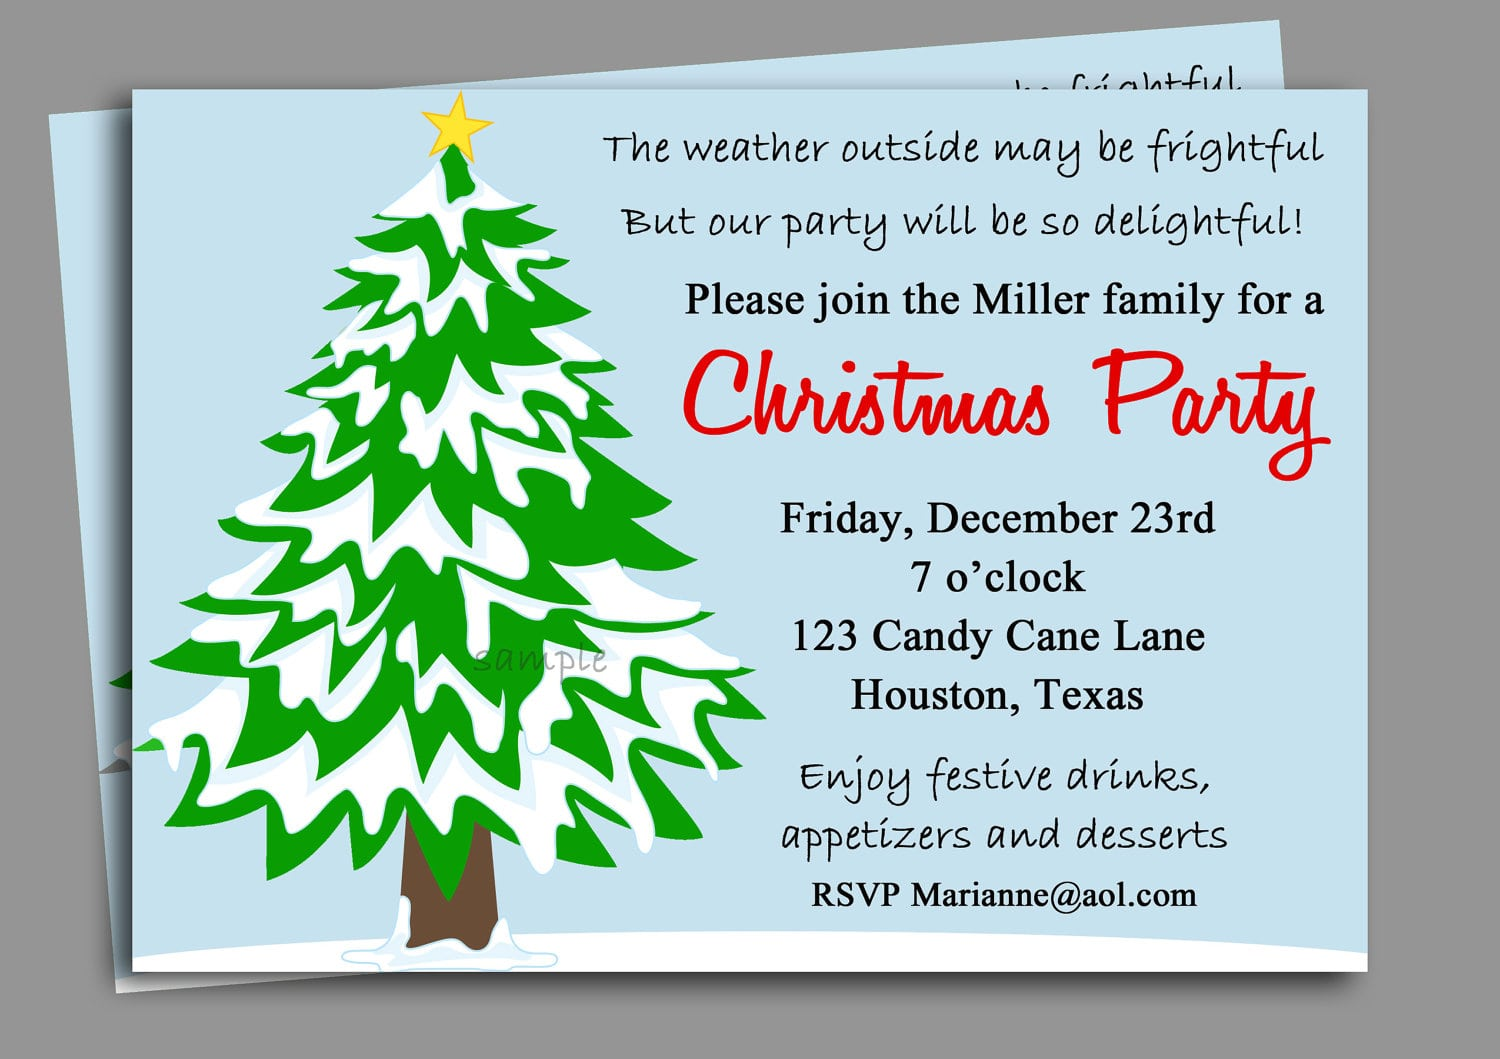 Office party invitation template mickey mouse invitations templates office party invitation templates choice image company christmas party invitation templates stopboris Gallery